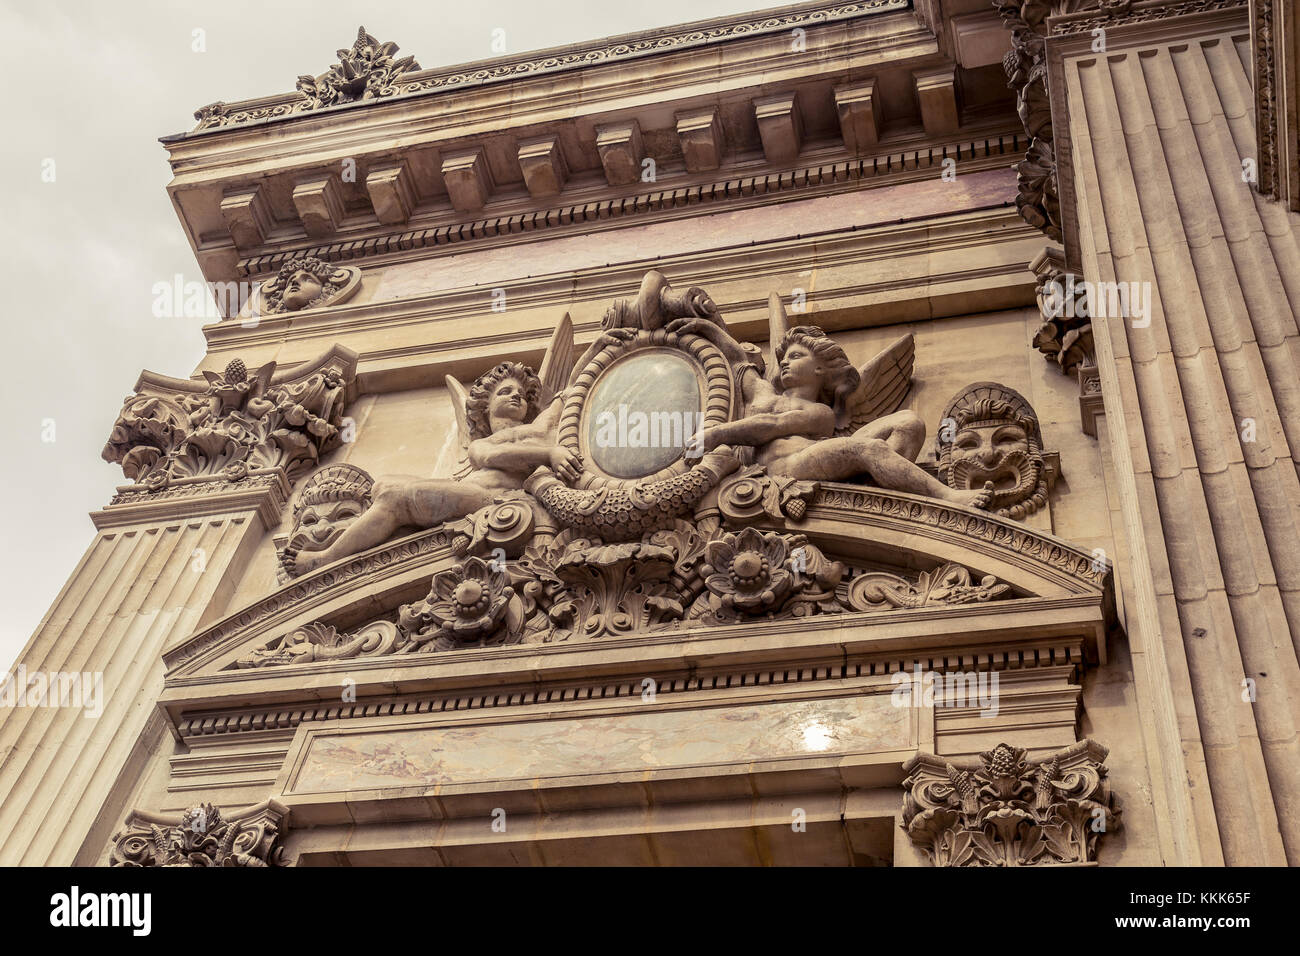 Paris, France, March 31 2017: Interior view of the Opera National de Paris Garnier, France. It was built from 1861 - Stock Image